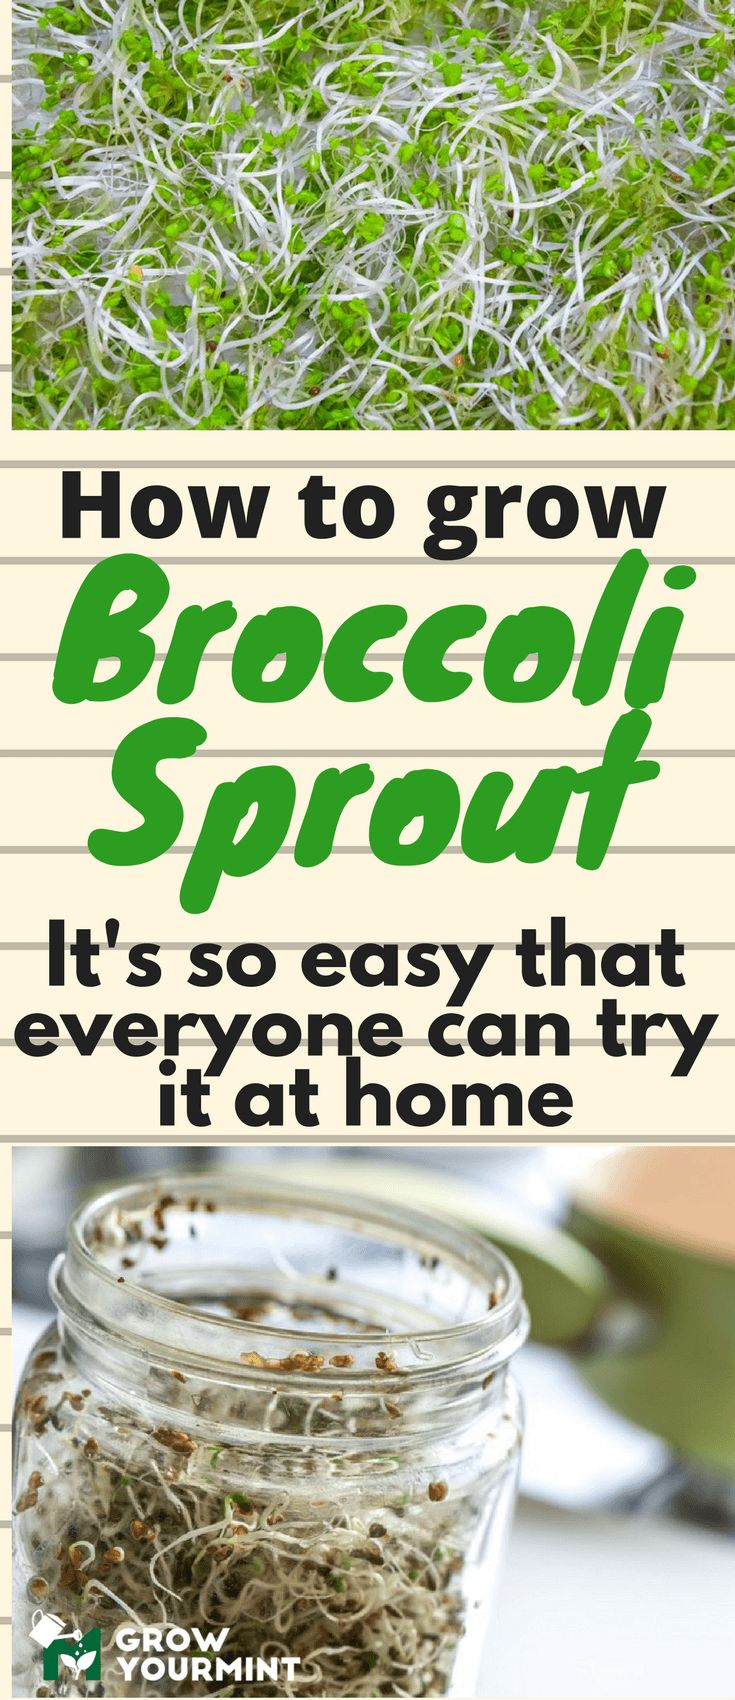 How to grow broccoli sprouts #broccolisprout#growyourmint #nutritionprogram,